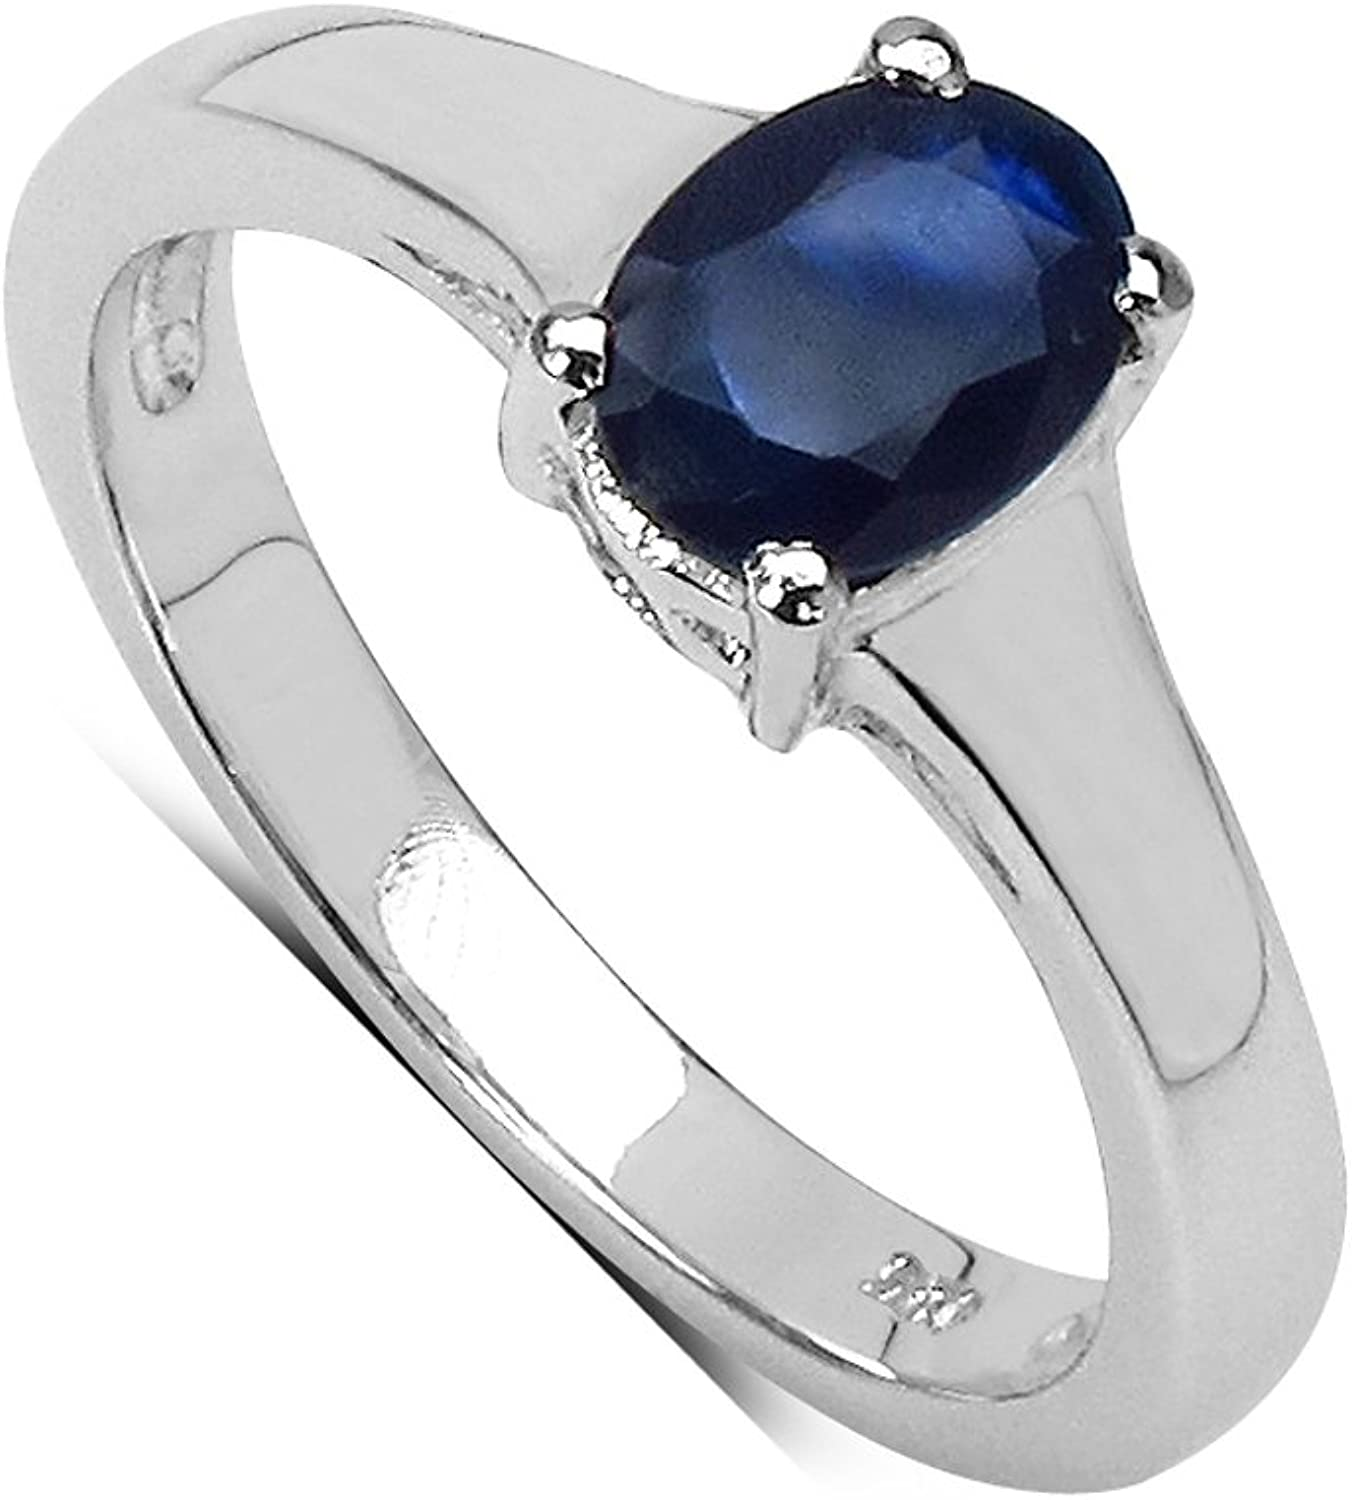 Details about  /Oval Shape 925 Sterling Silver Gemstone Sapphire Rings For Women Engagement Gift